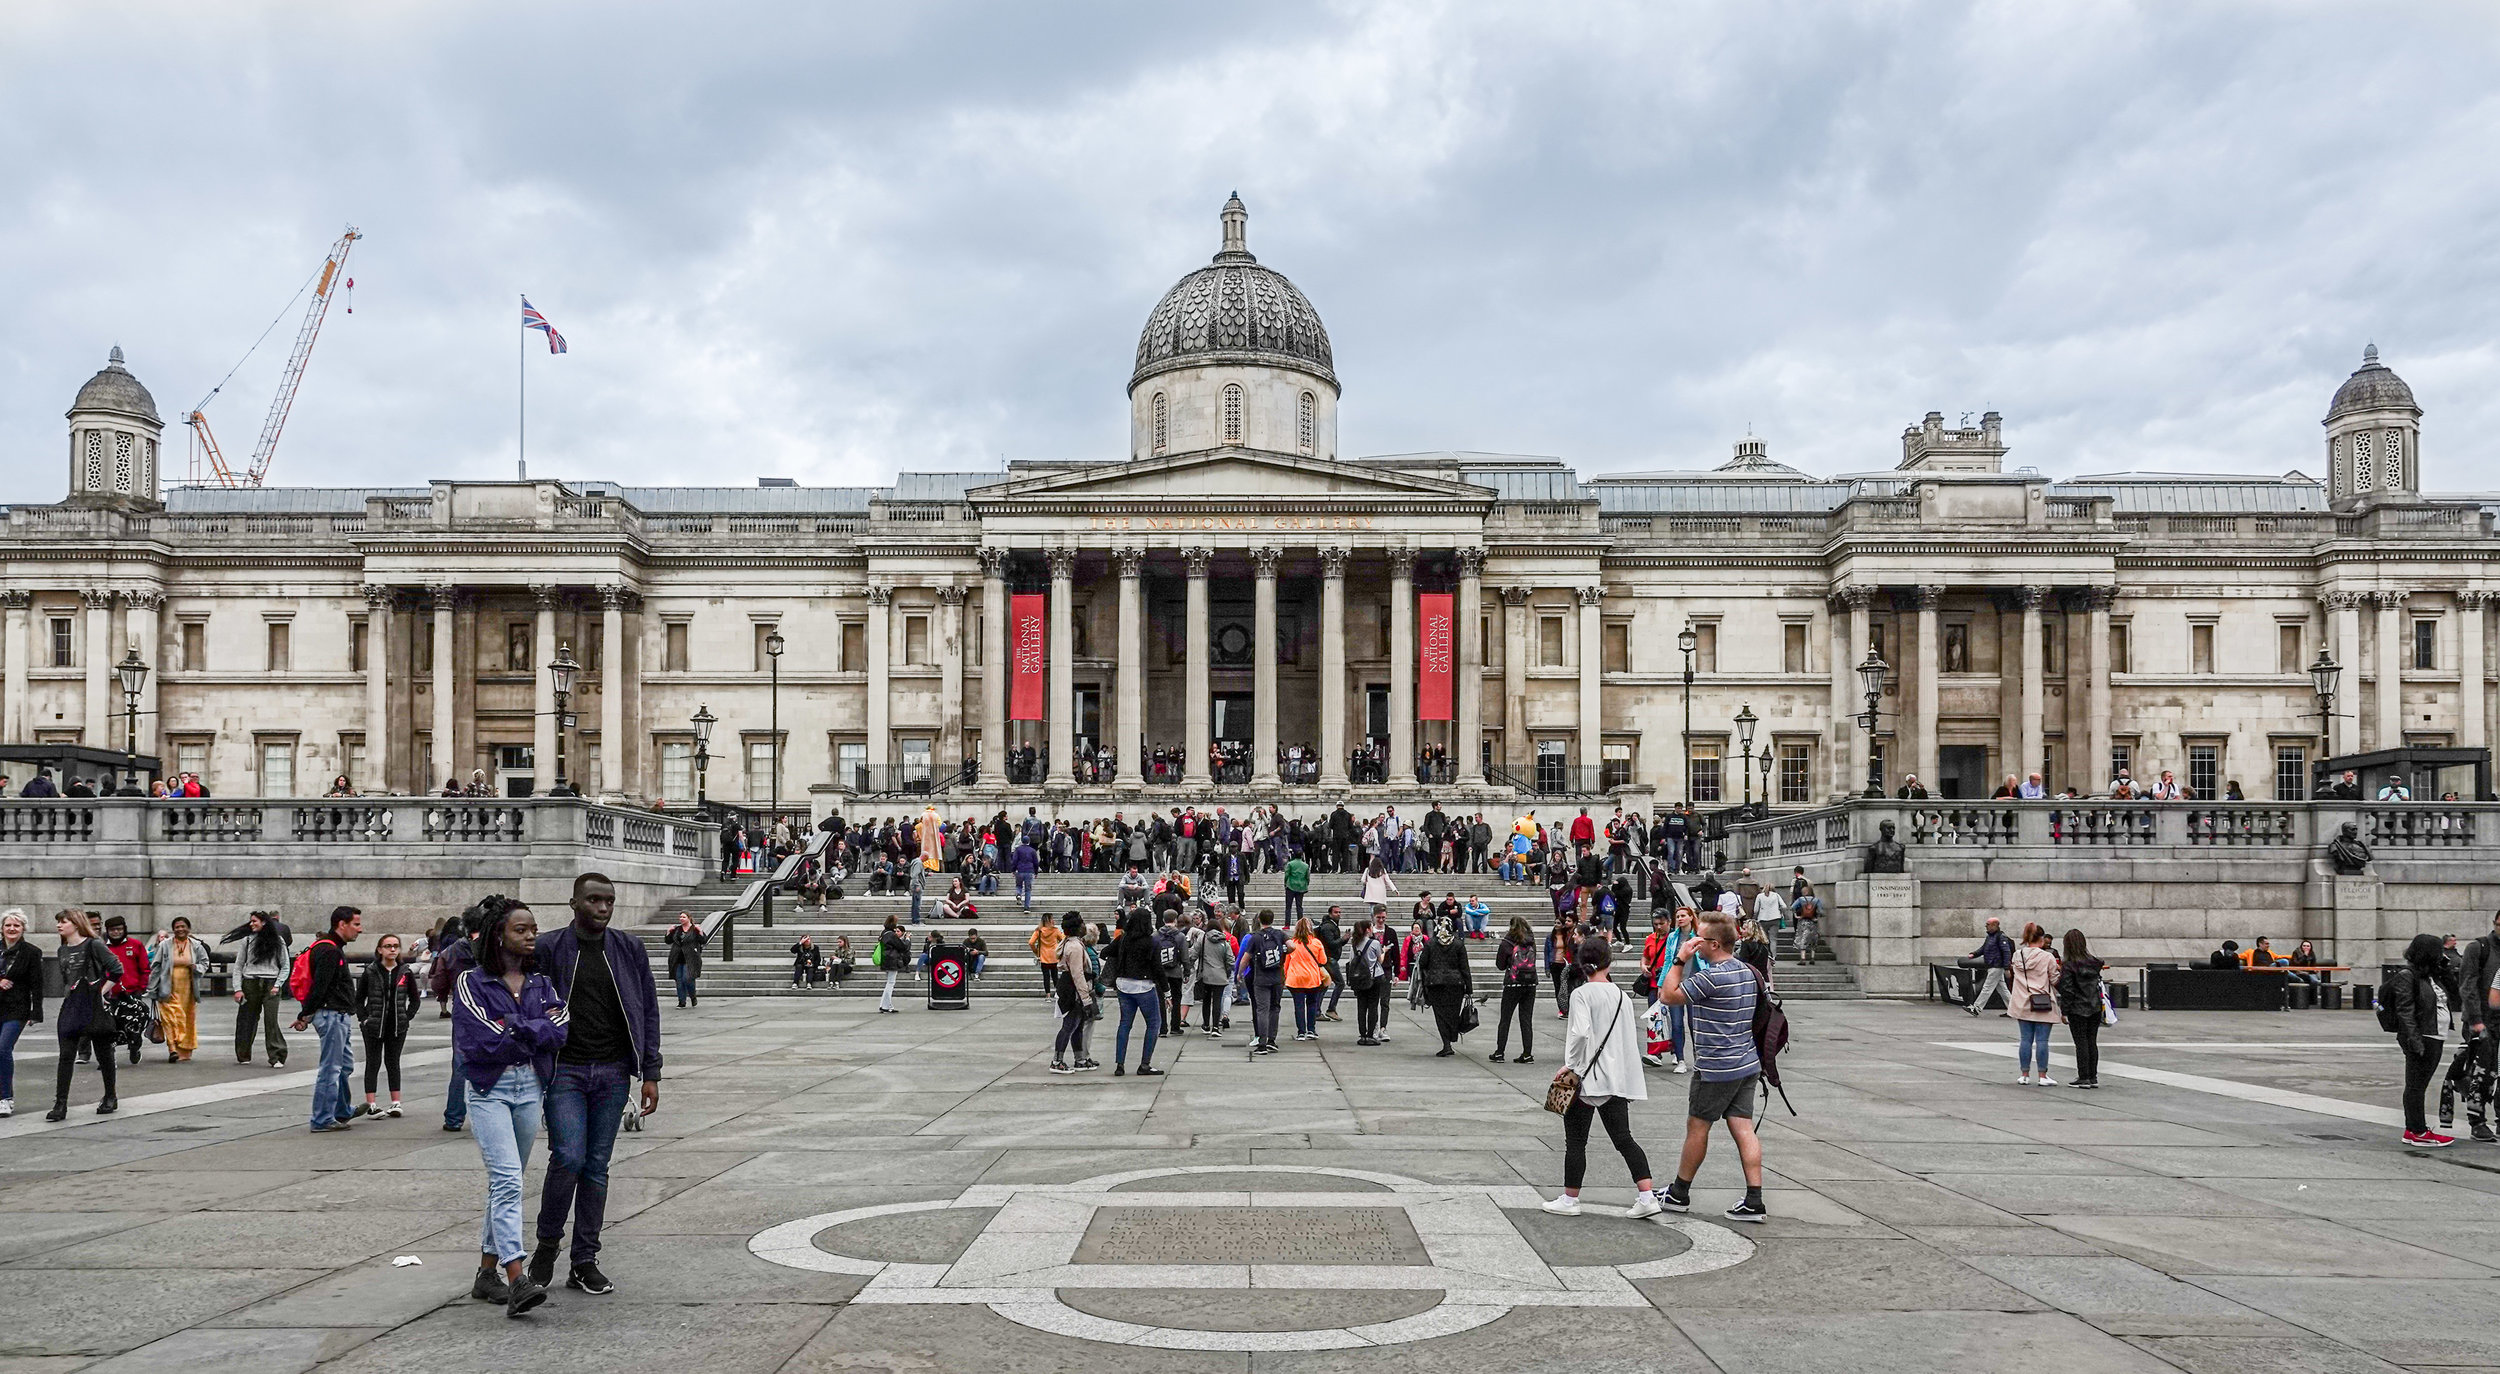 The National Gallery as seen from Trafalgar Square